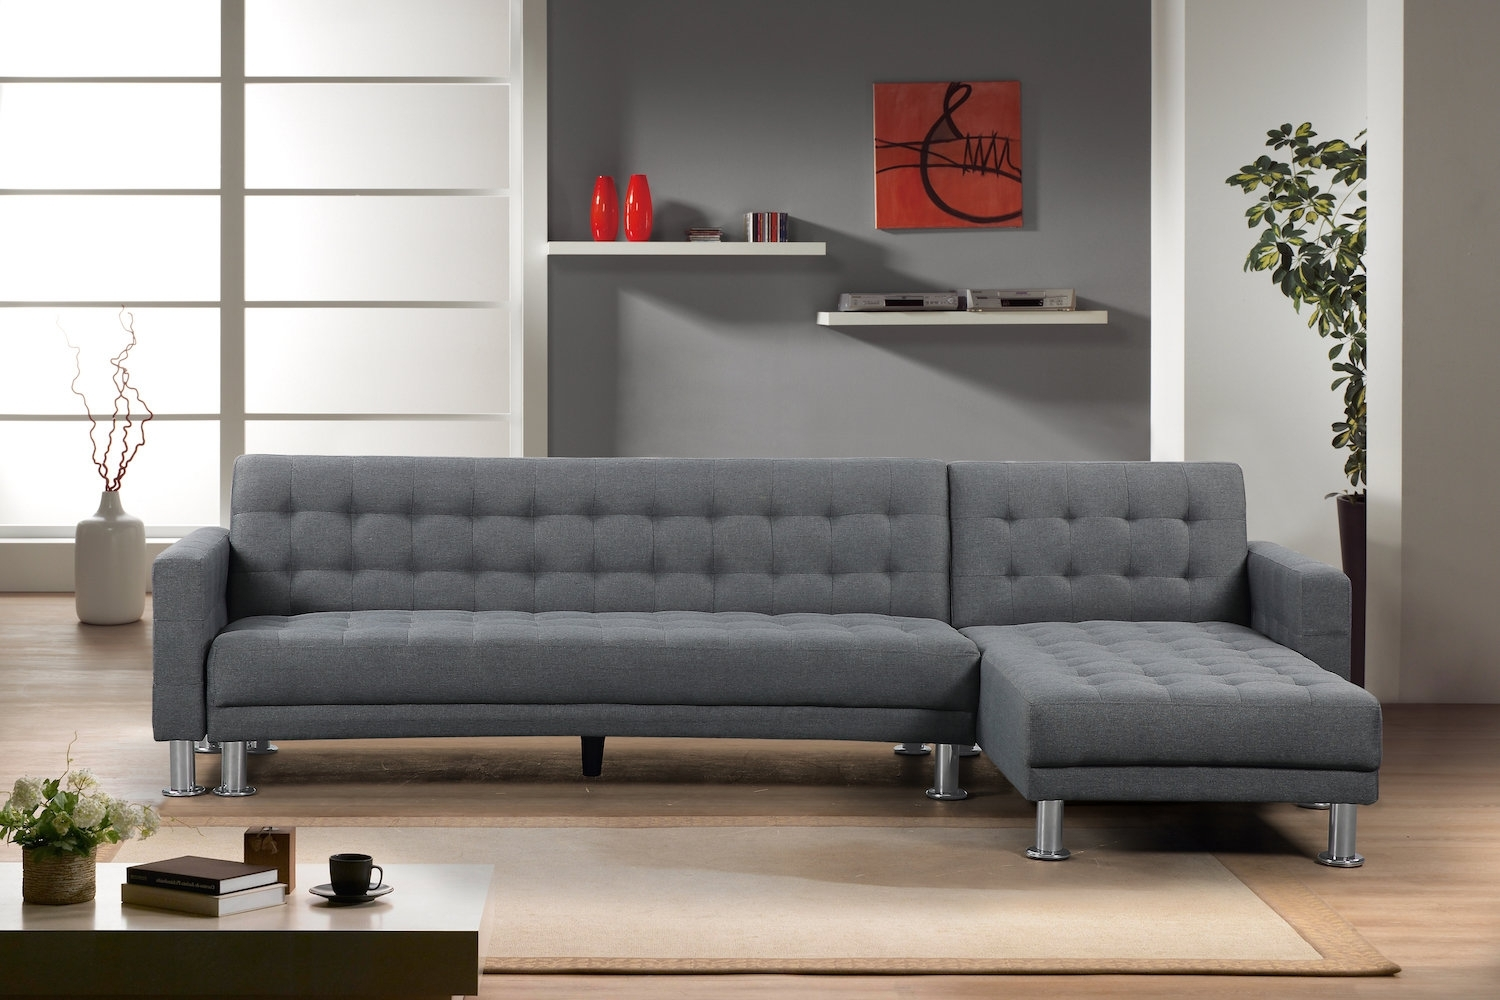 Brayden Studio Lacaille Sleeper Sectional & Reviews | Wayfair Inside Marissa Ii 3 Piece Sectionals (Image 2 of 25)